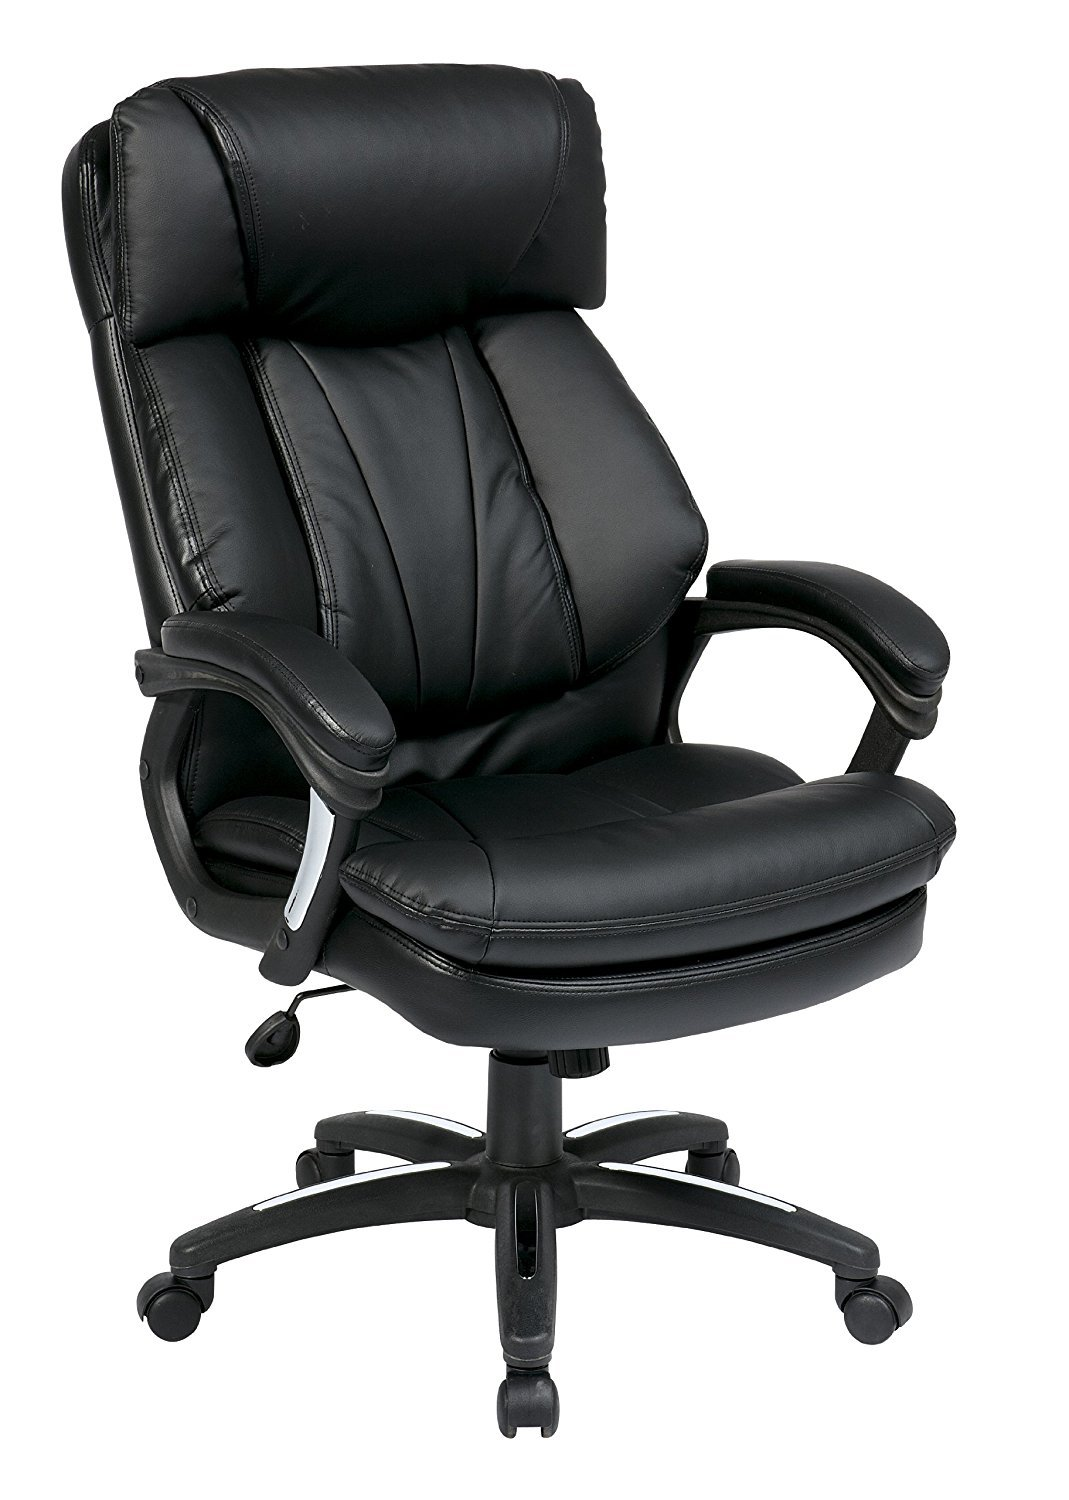 Office Star Oversized Faux Leather Executive Chair Home